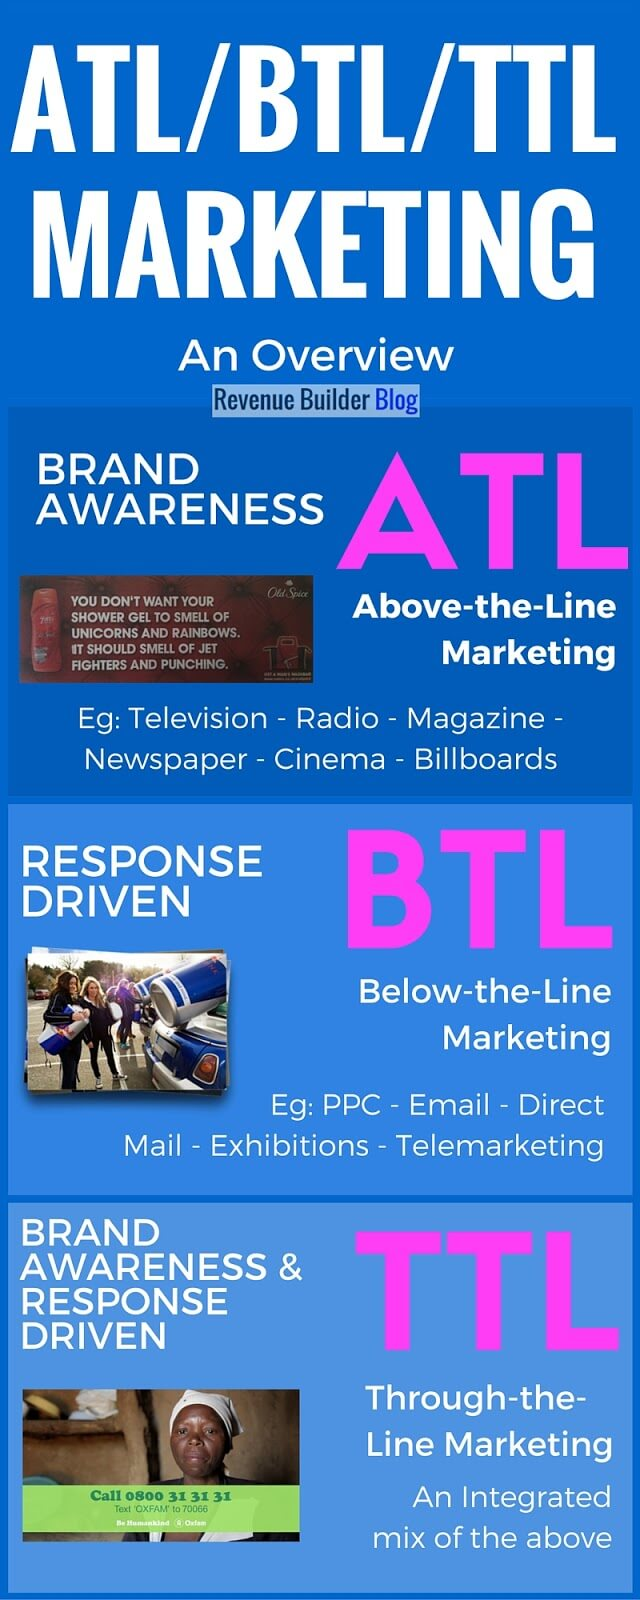 ATL, BTL, TTL marketing infographic